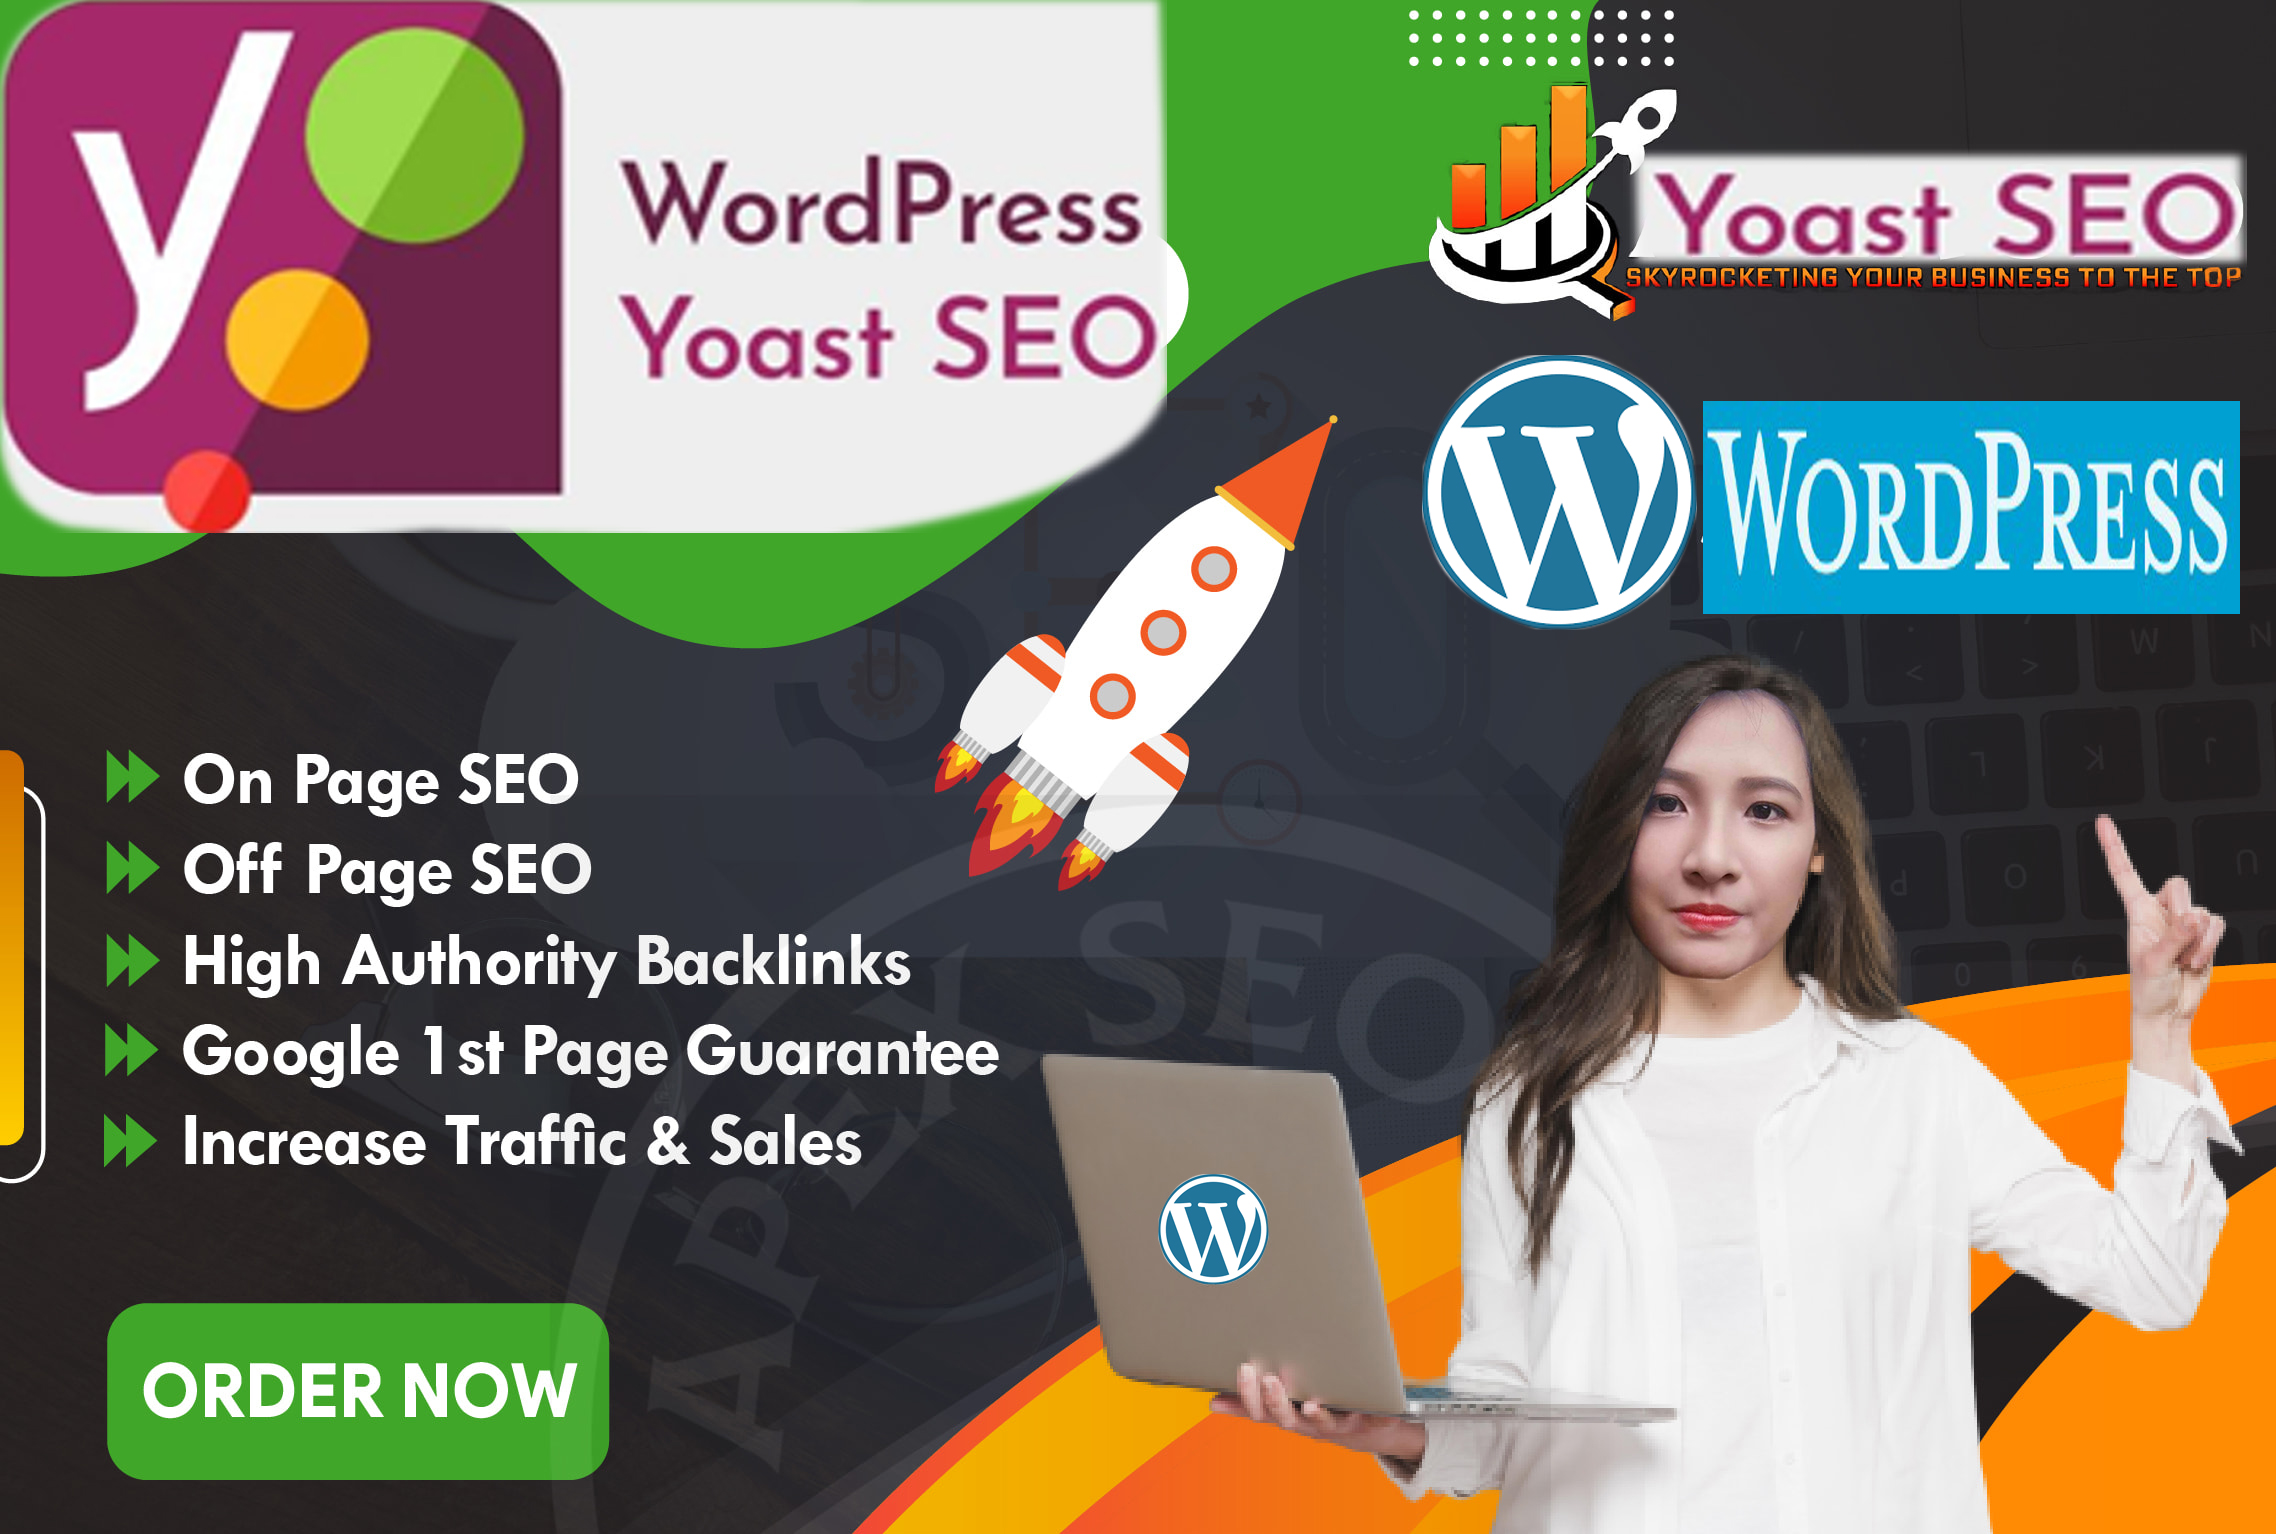 do complete Wordpress SEO for 1st page ranking on google